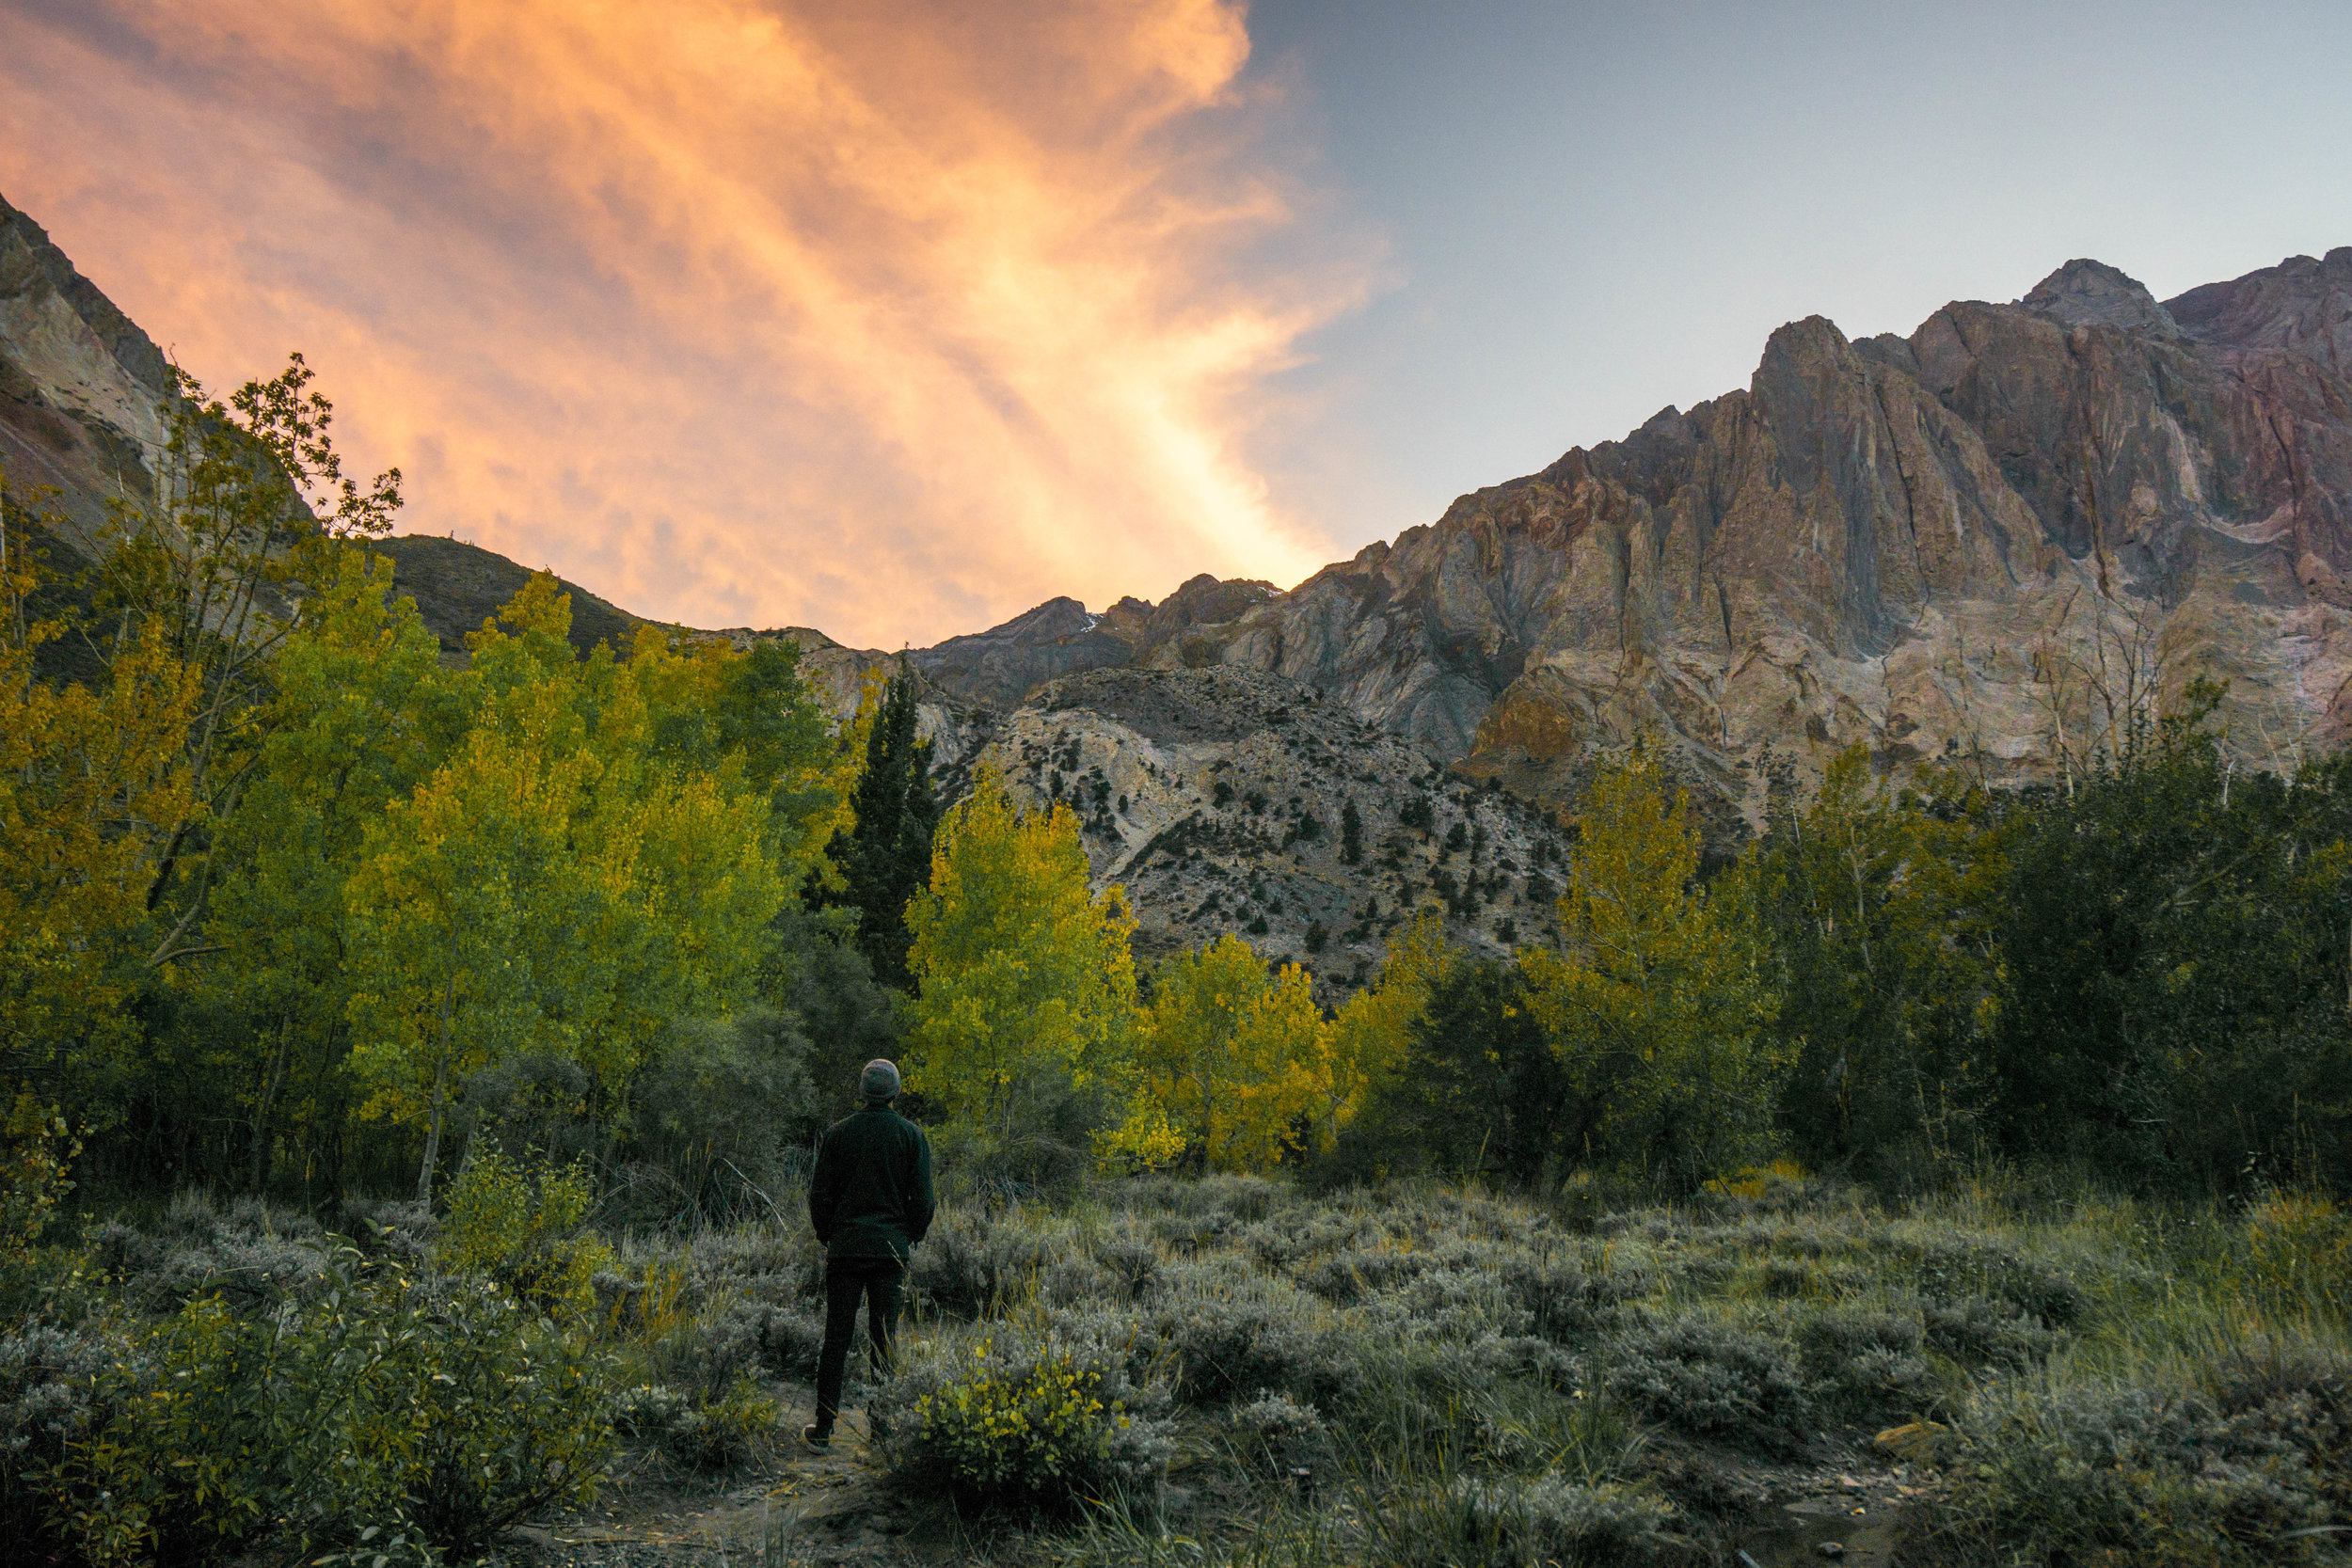 On our way back to camp we stop by a granite canyon for the tail-end of sunset. Wasn't much later when we hopped in our tent, worn out from the day's misadventures.